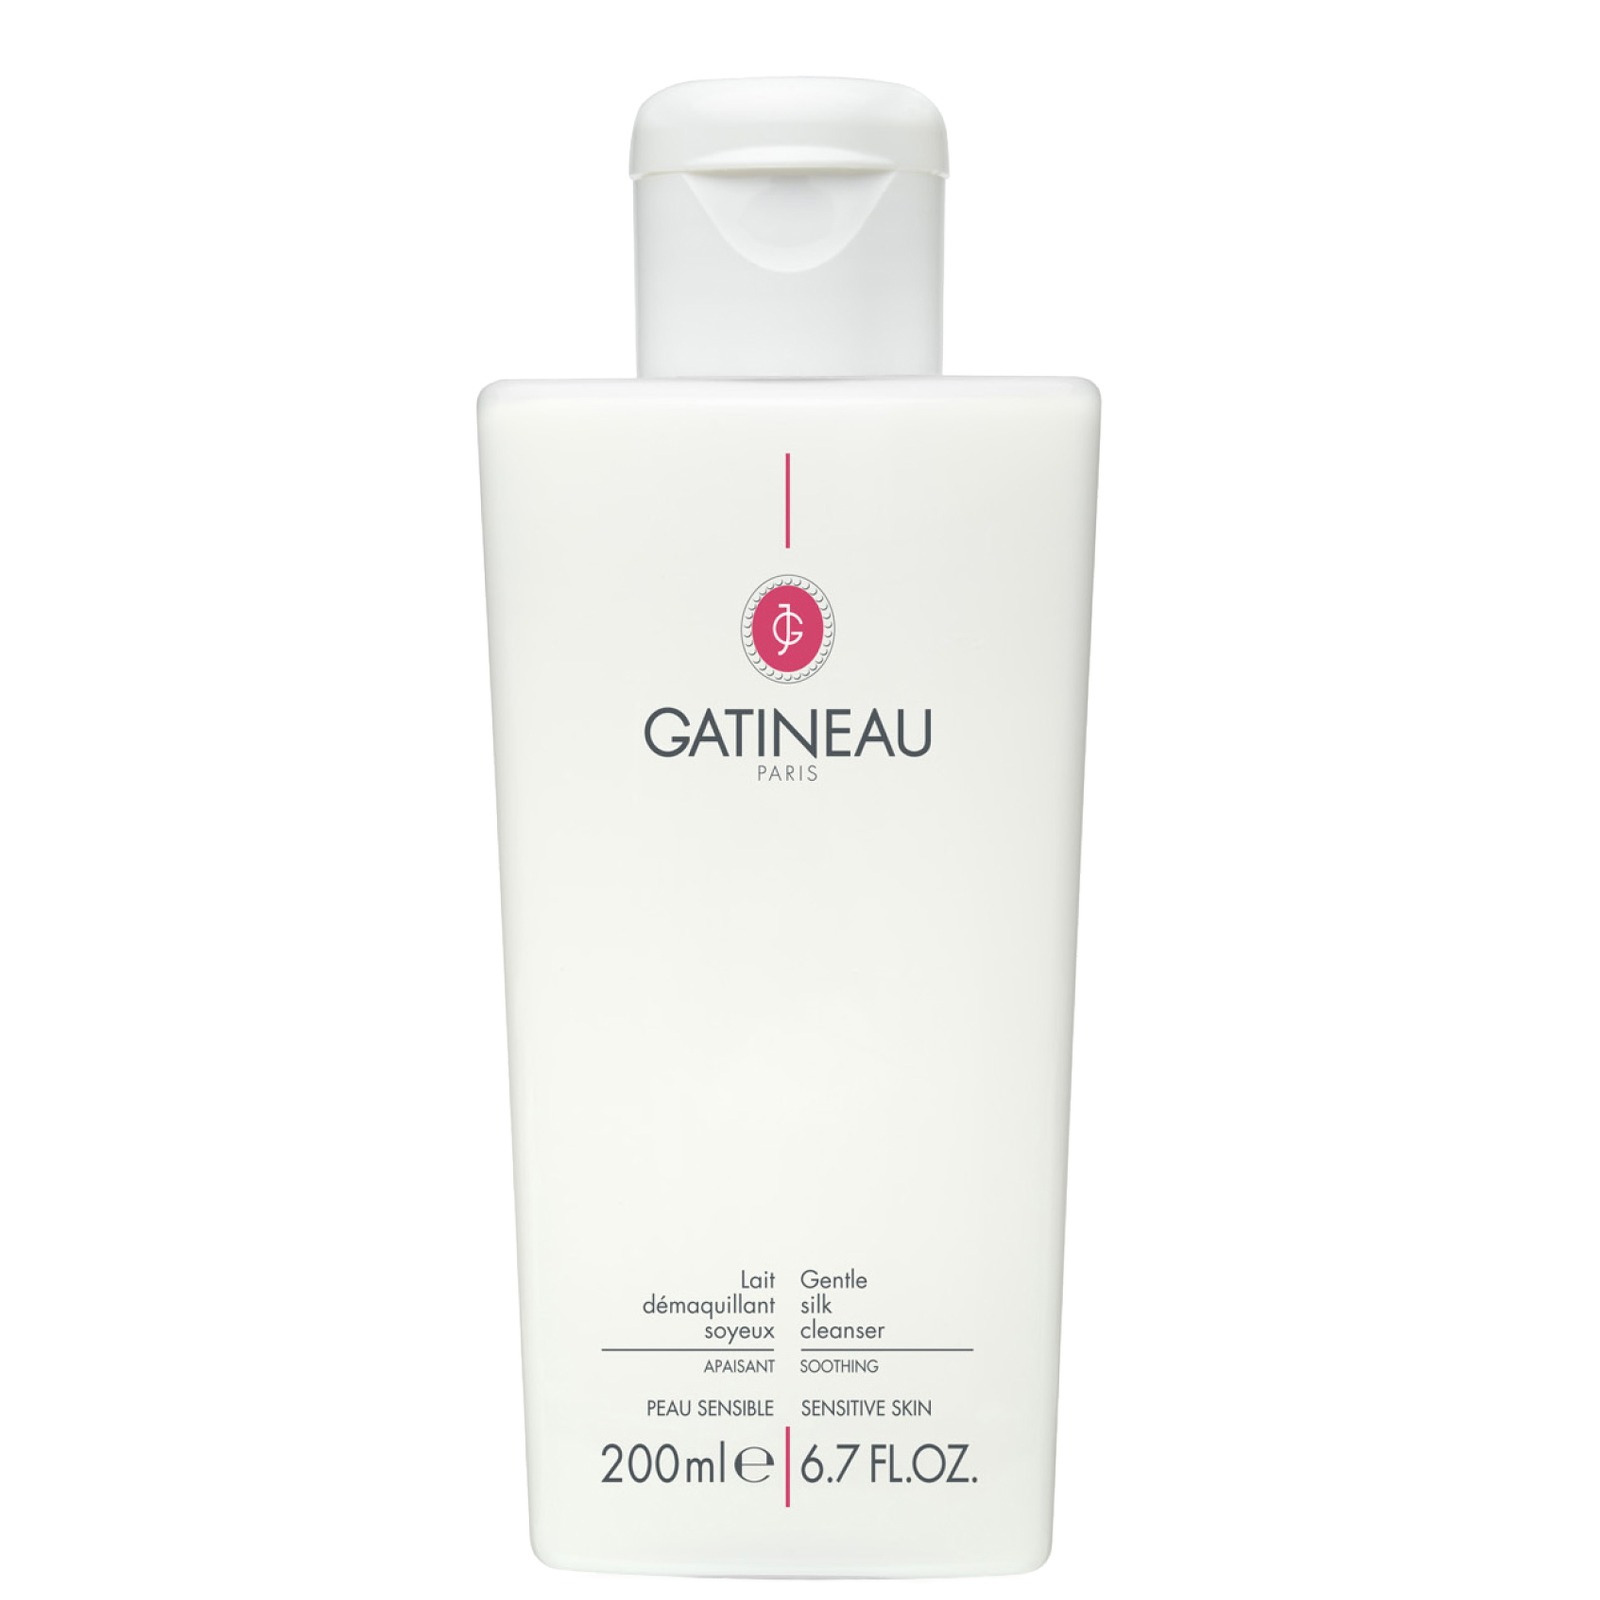 Gatineau Face Basics Gentle Silk Cleanser 200ml Skincare Twin Pack Kit Wiper Fluid Pouch 400ml X 2pcs